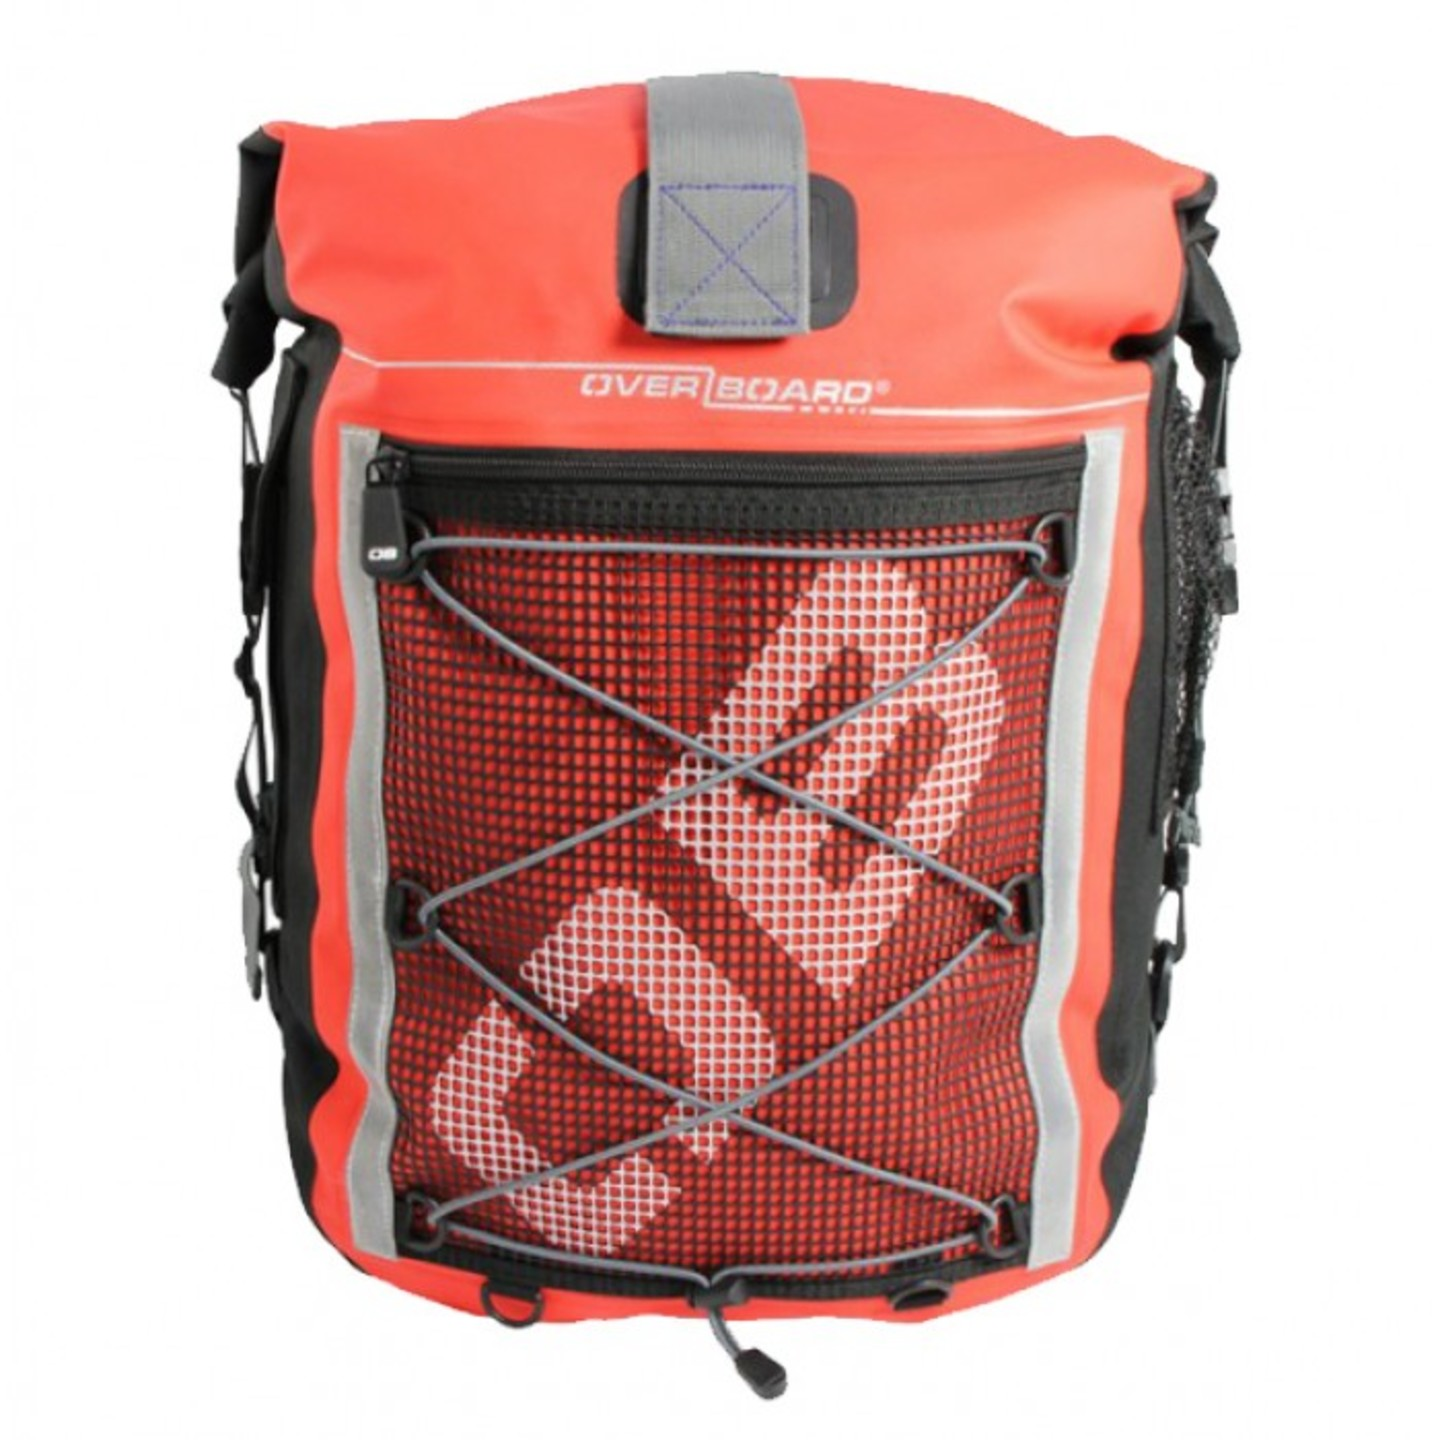 Overboard 30 Litres Pro Sports Backpack